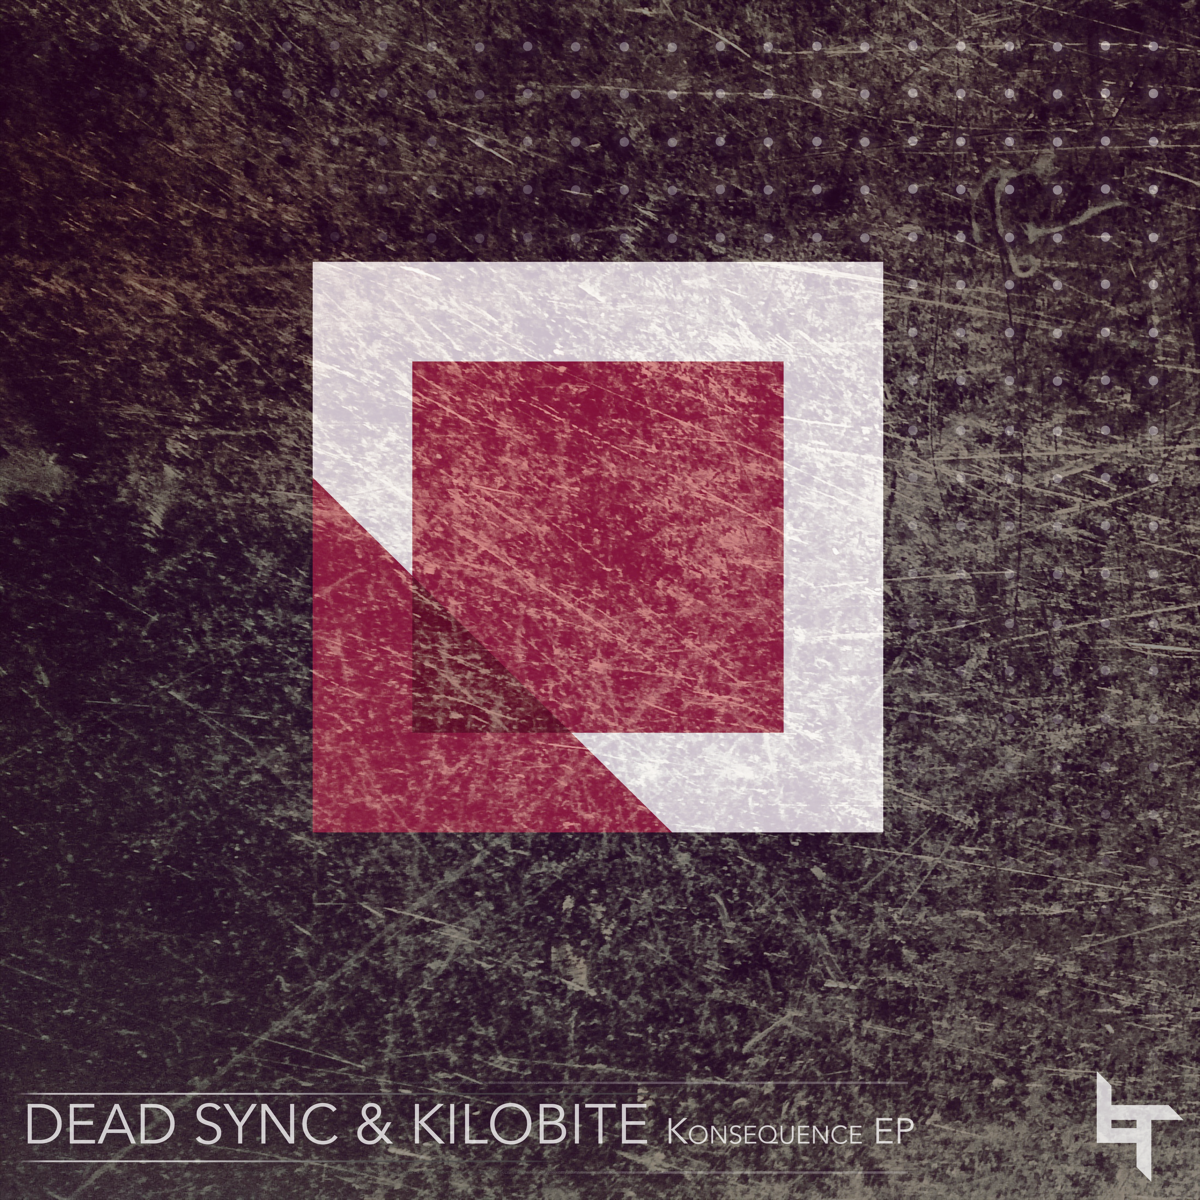 dead-sync-kilobite-konsequence